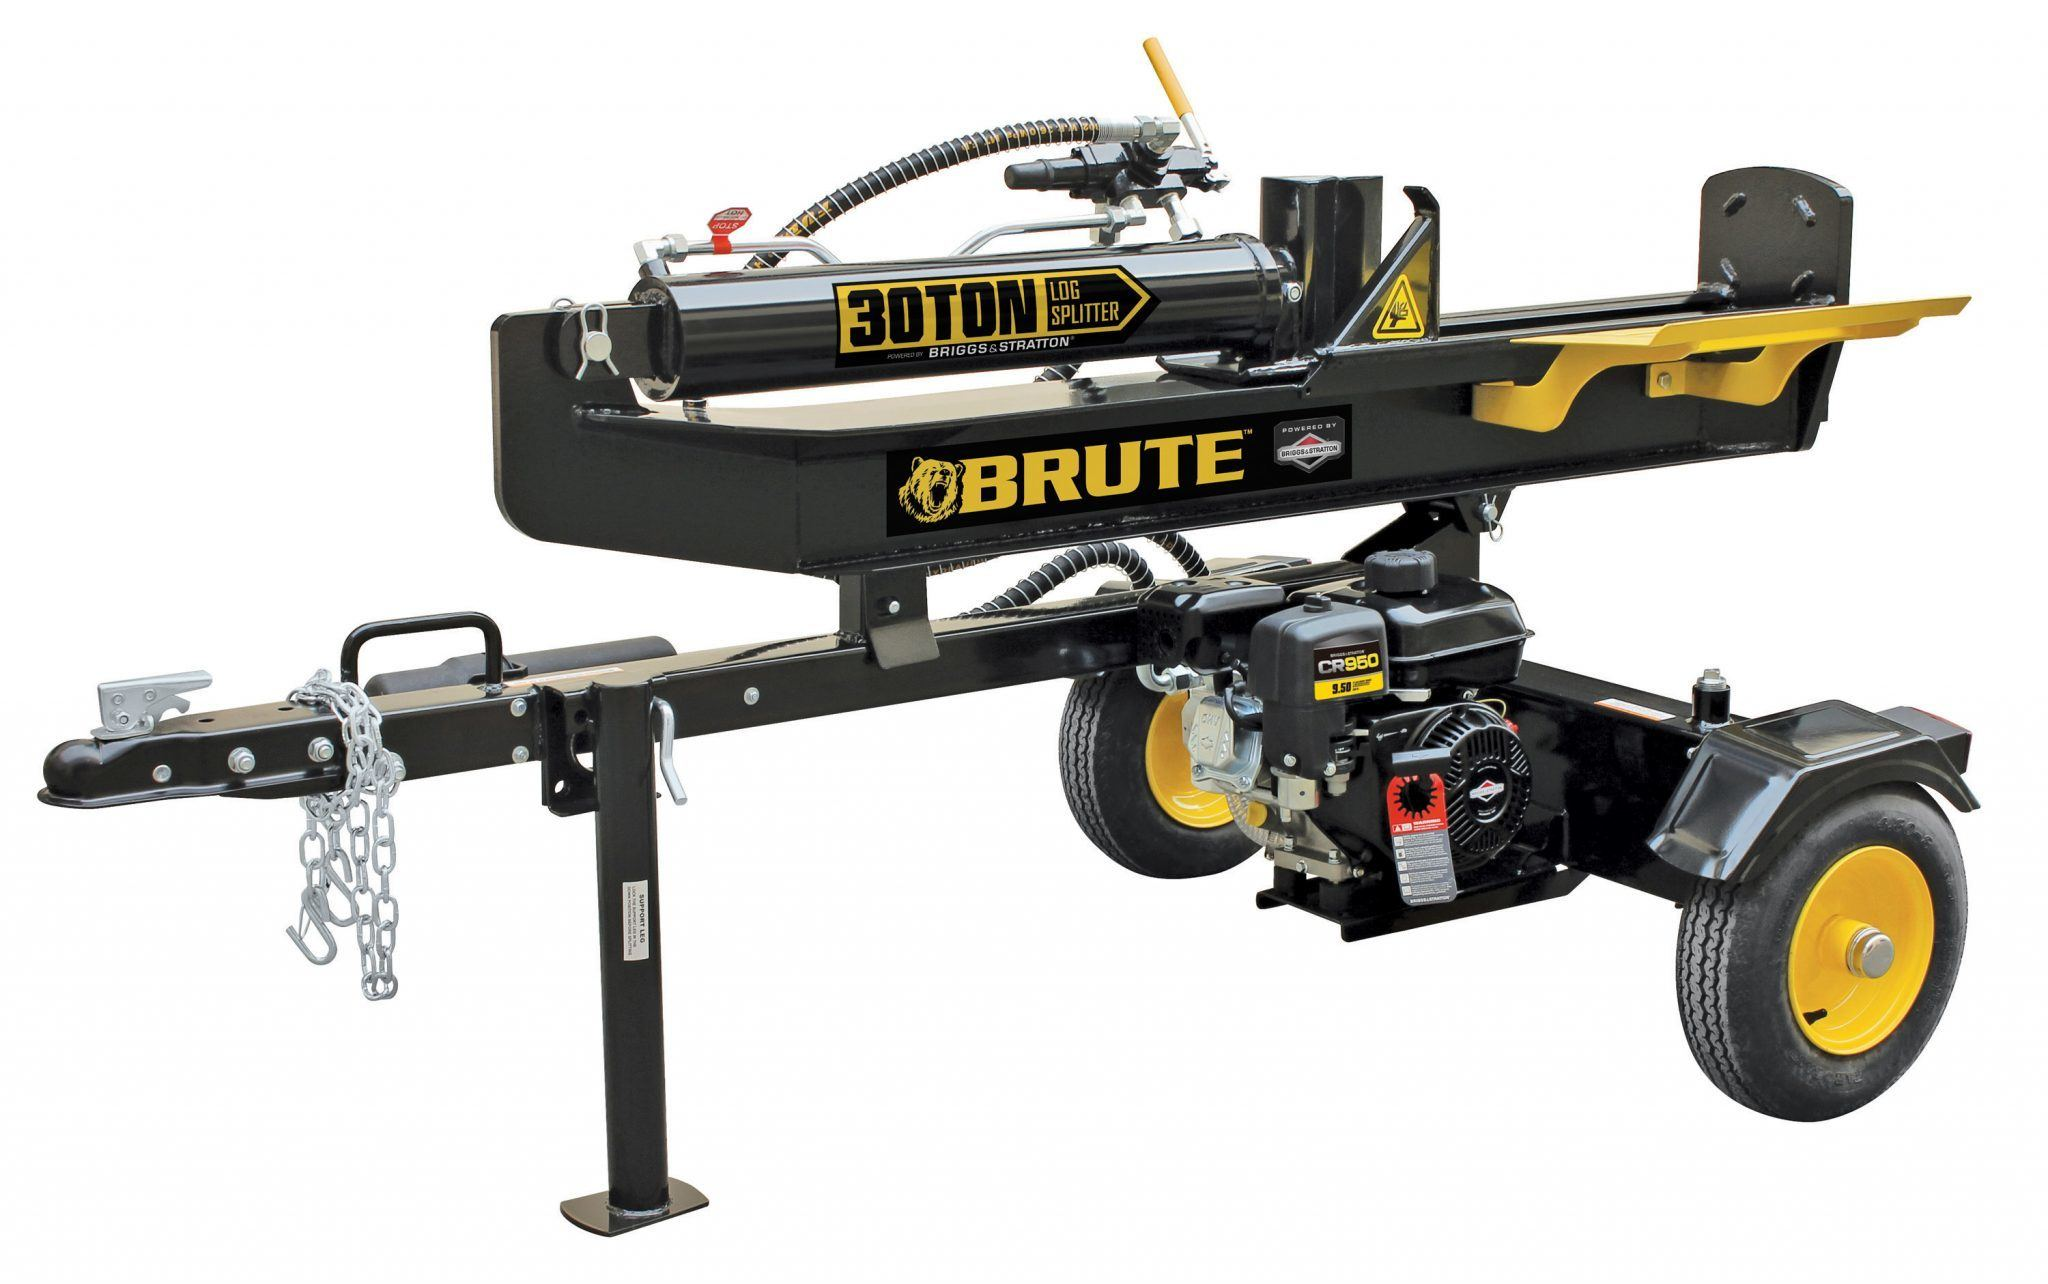 Brute 014441 30-ton Gas Powered Log Splitter